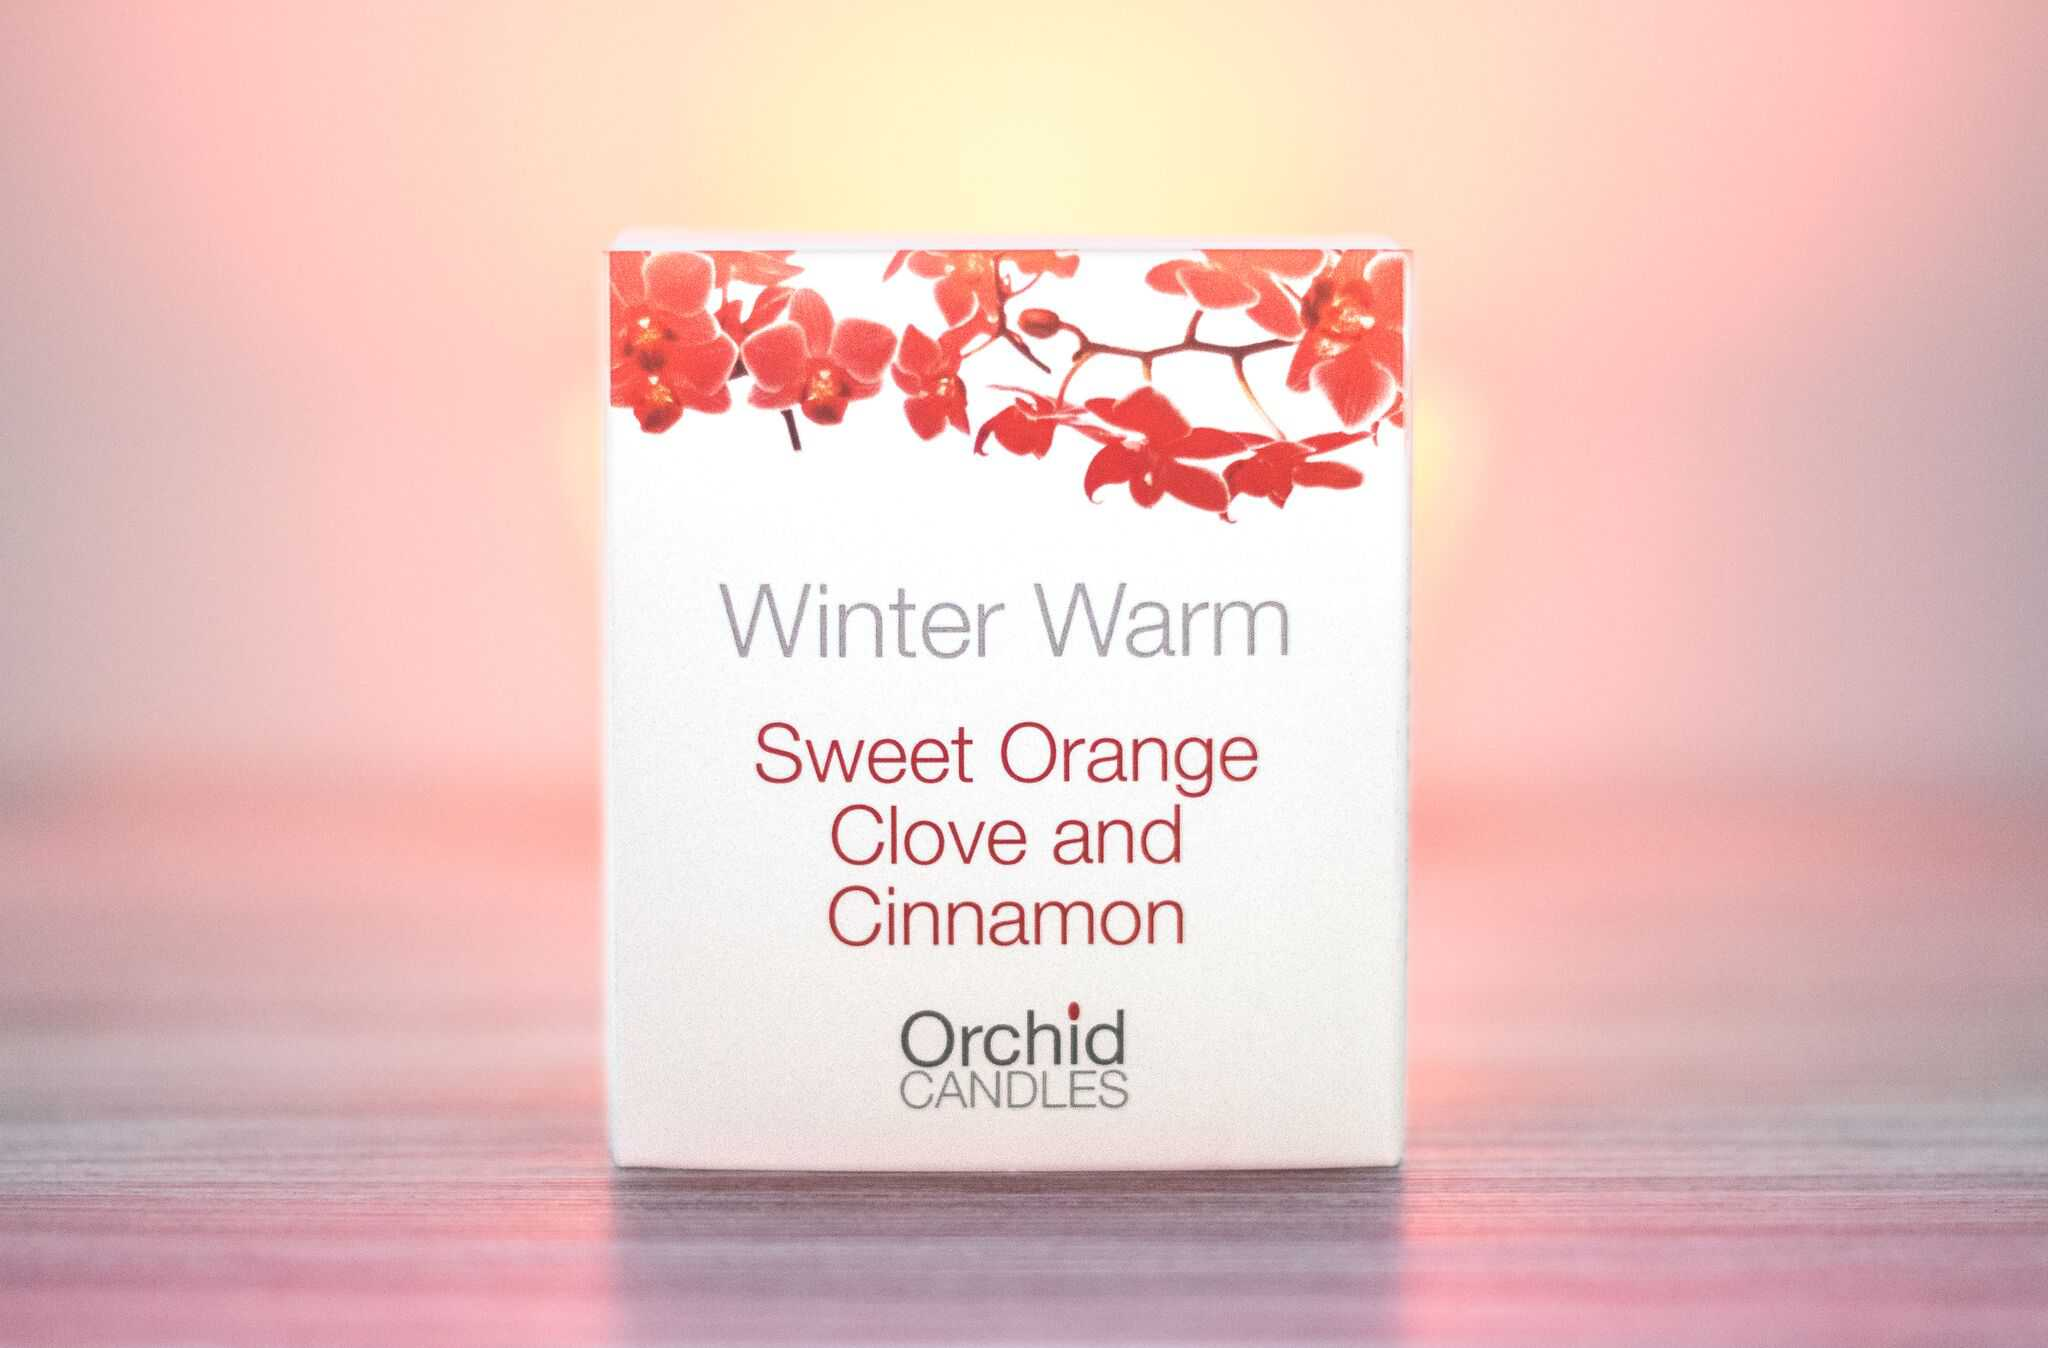 Winter warm candle